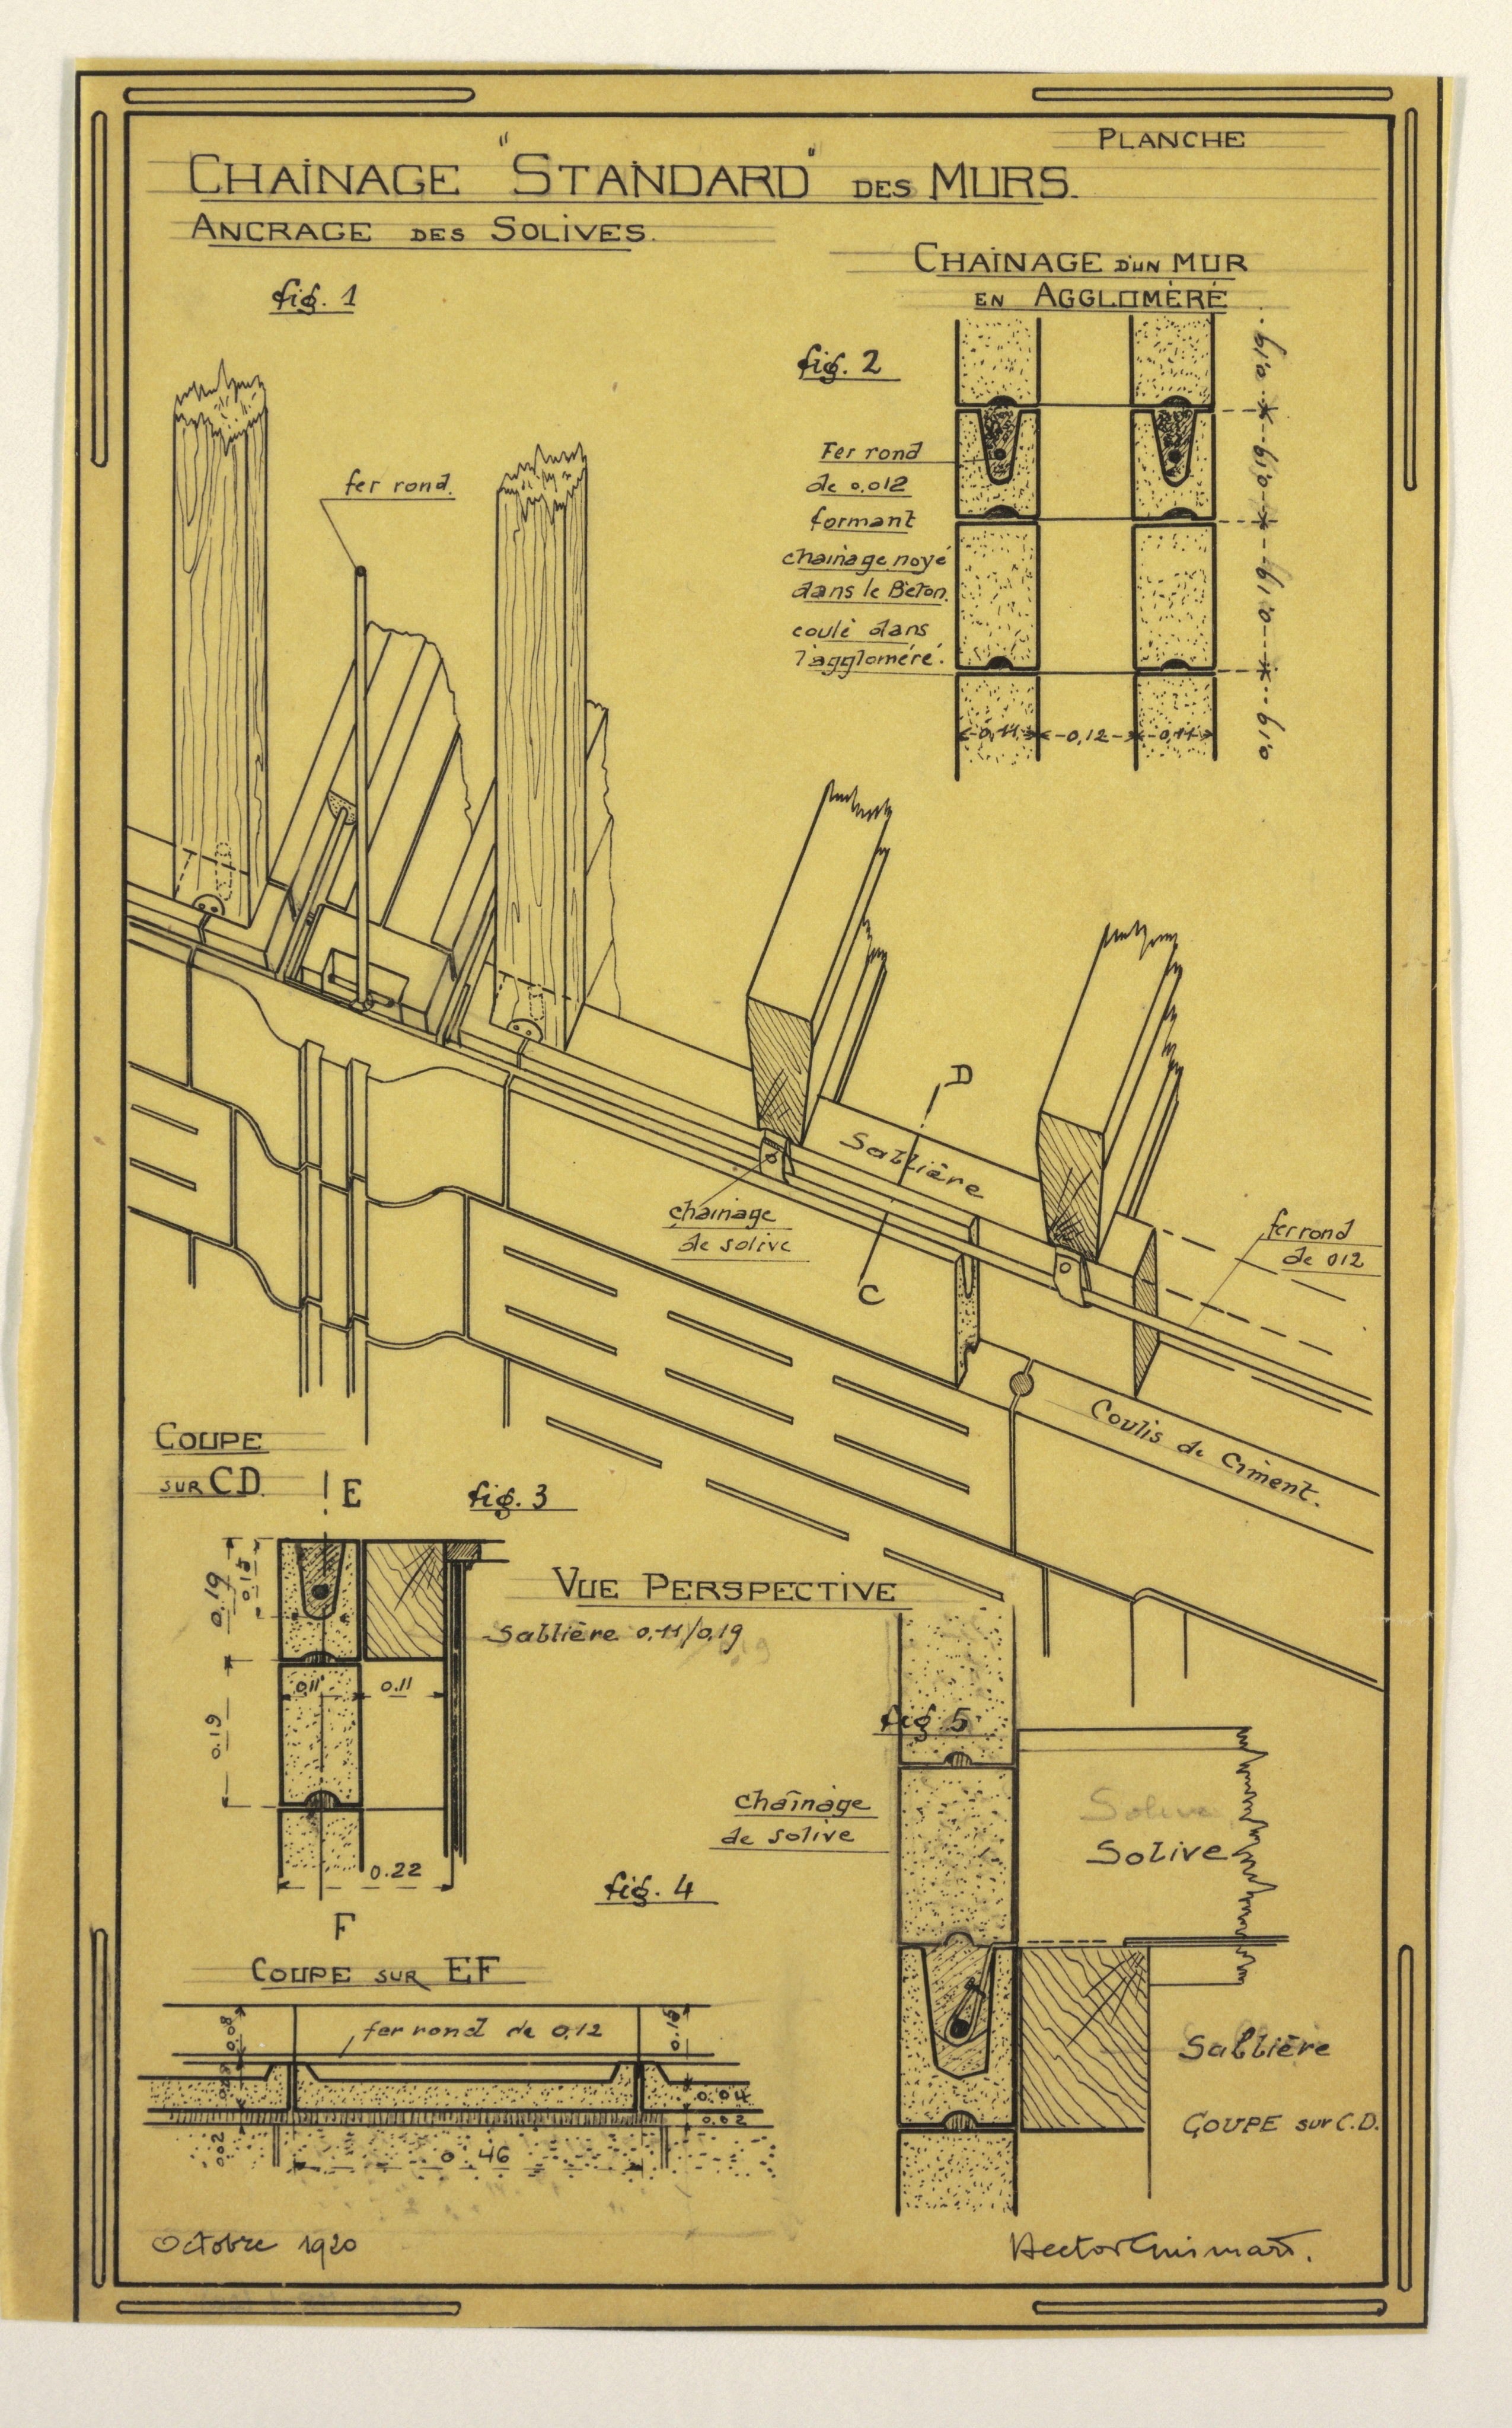 Filedrawing Design For A Mass Operational House Designed By Hector Wall Schematic Engineering Diagram Guimard